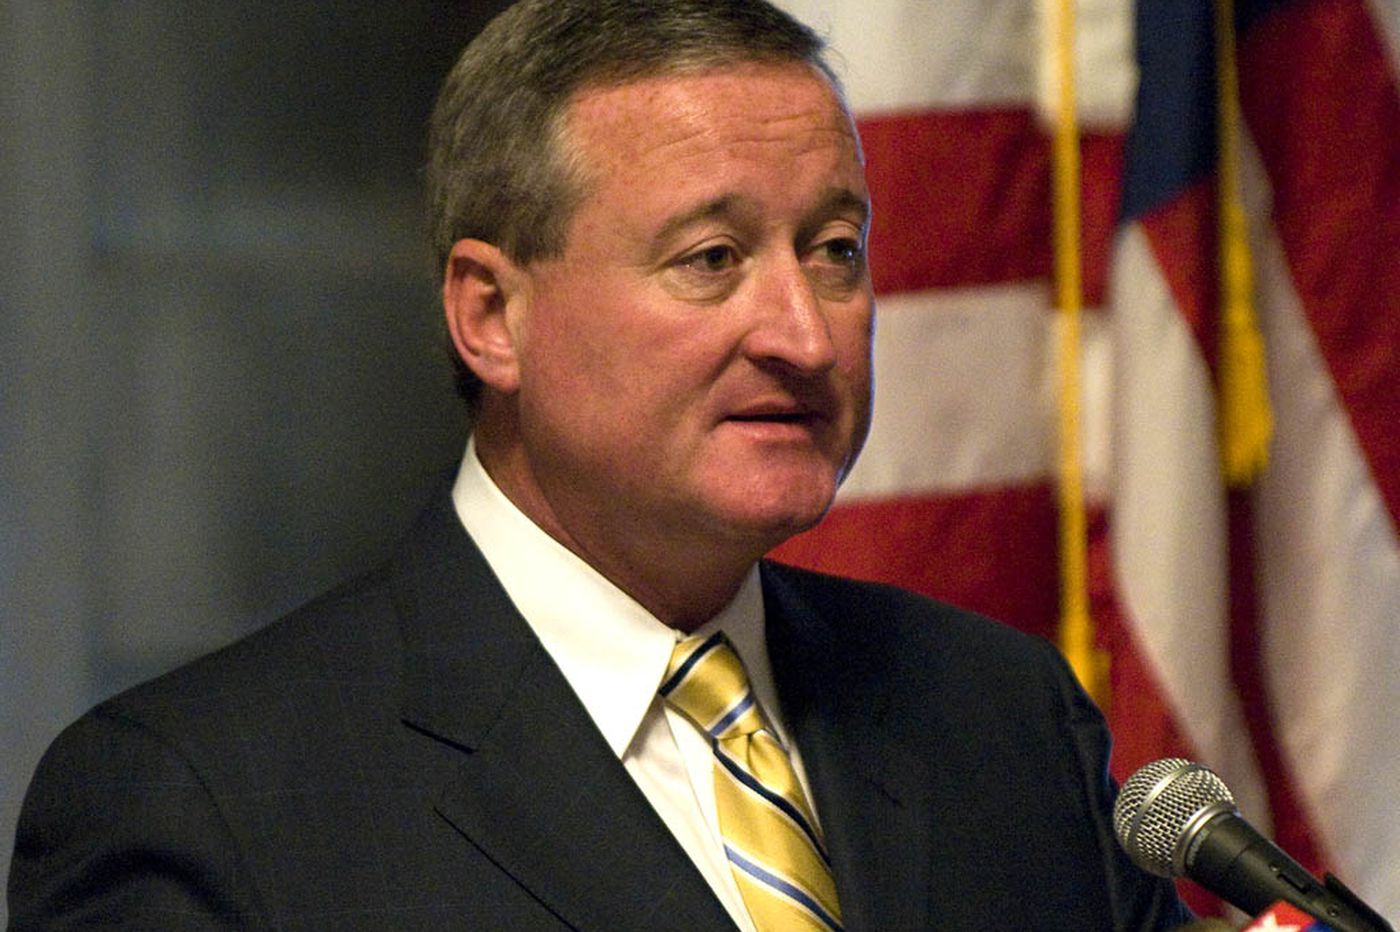 Plot thickens as field thins: Kenney to join Philly mayor's race?